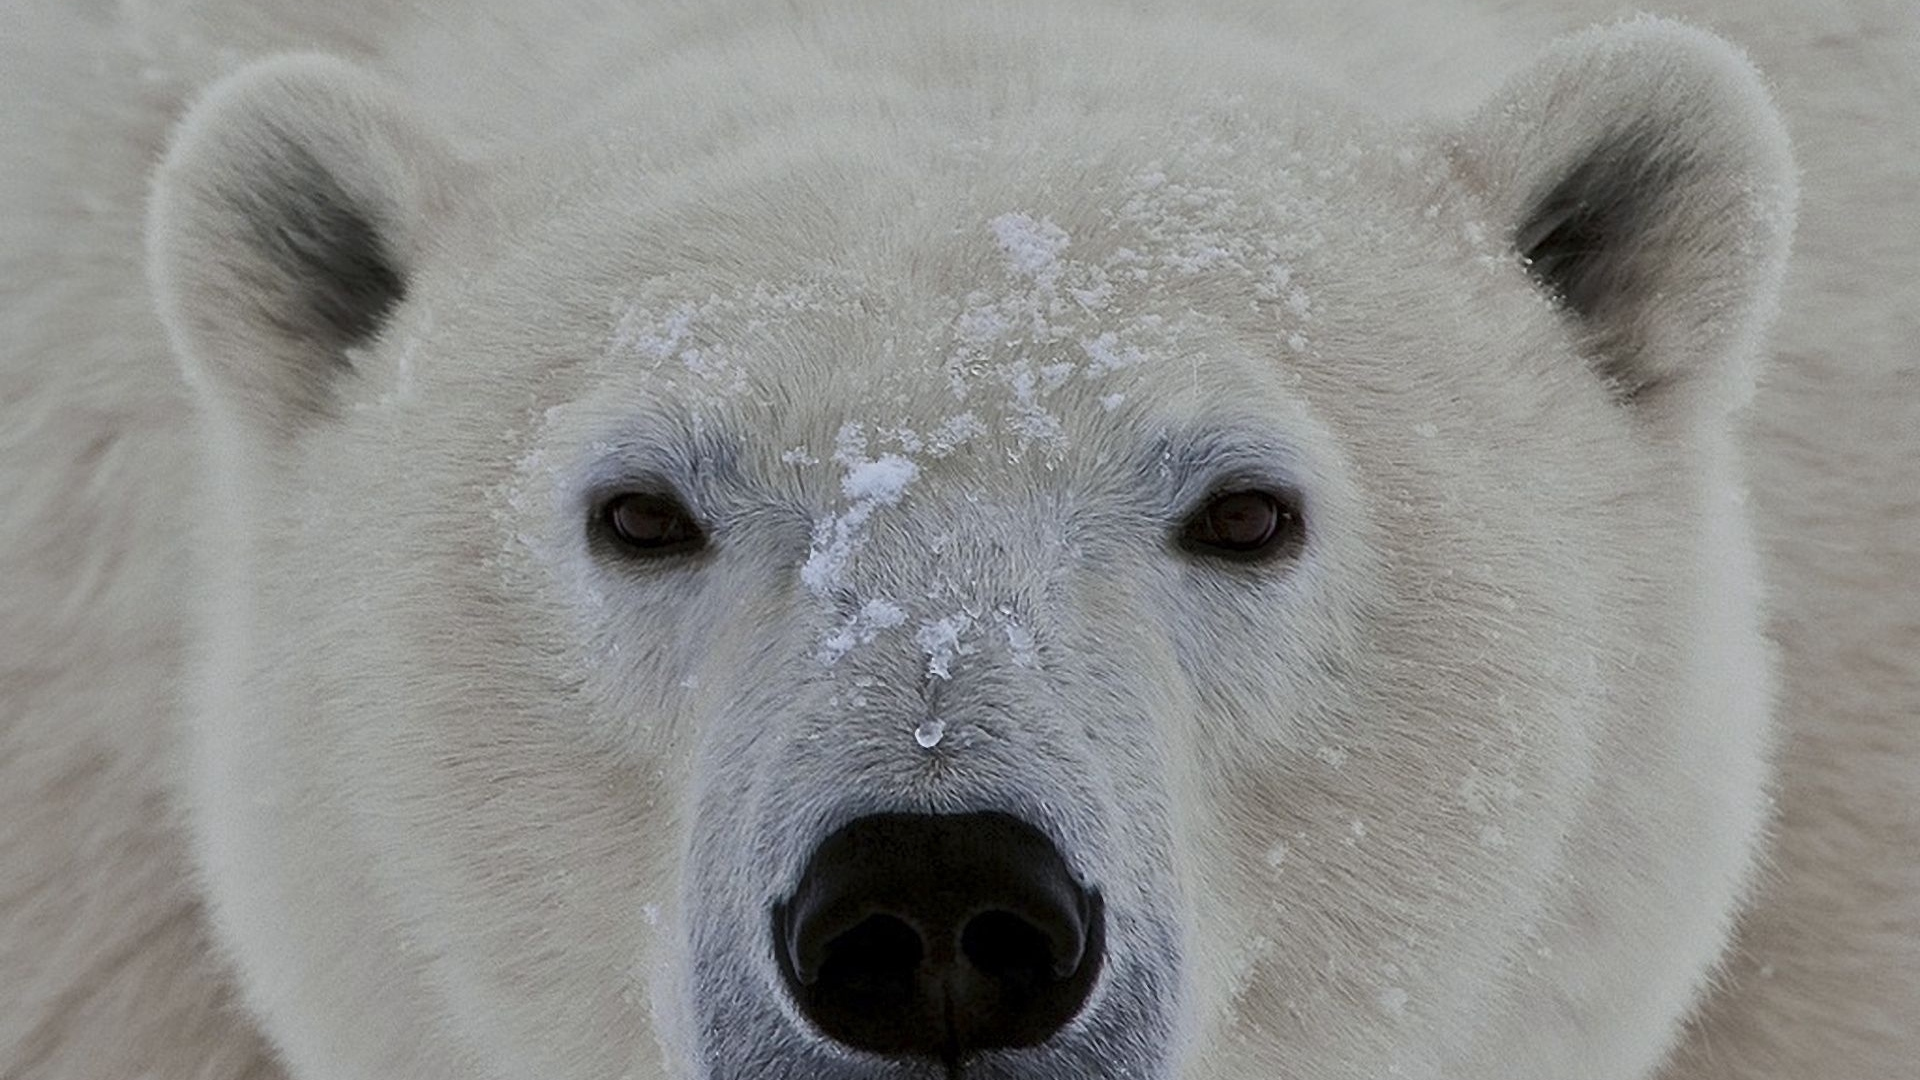 polar_bear_face_eyes_56088_1920x1080.jpg